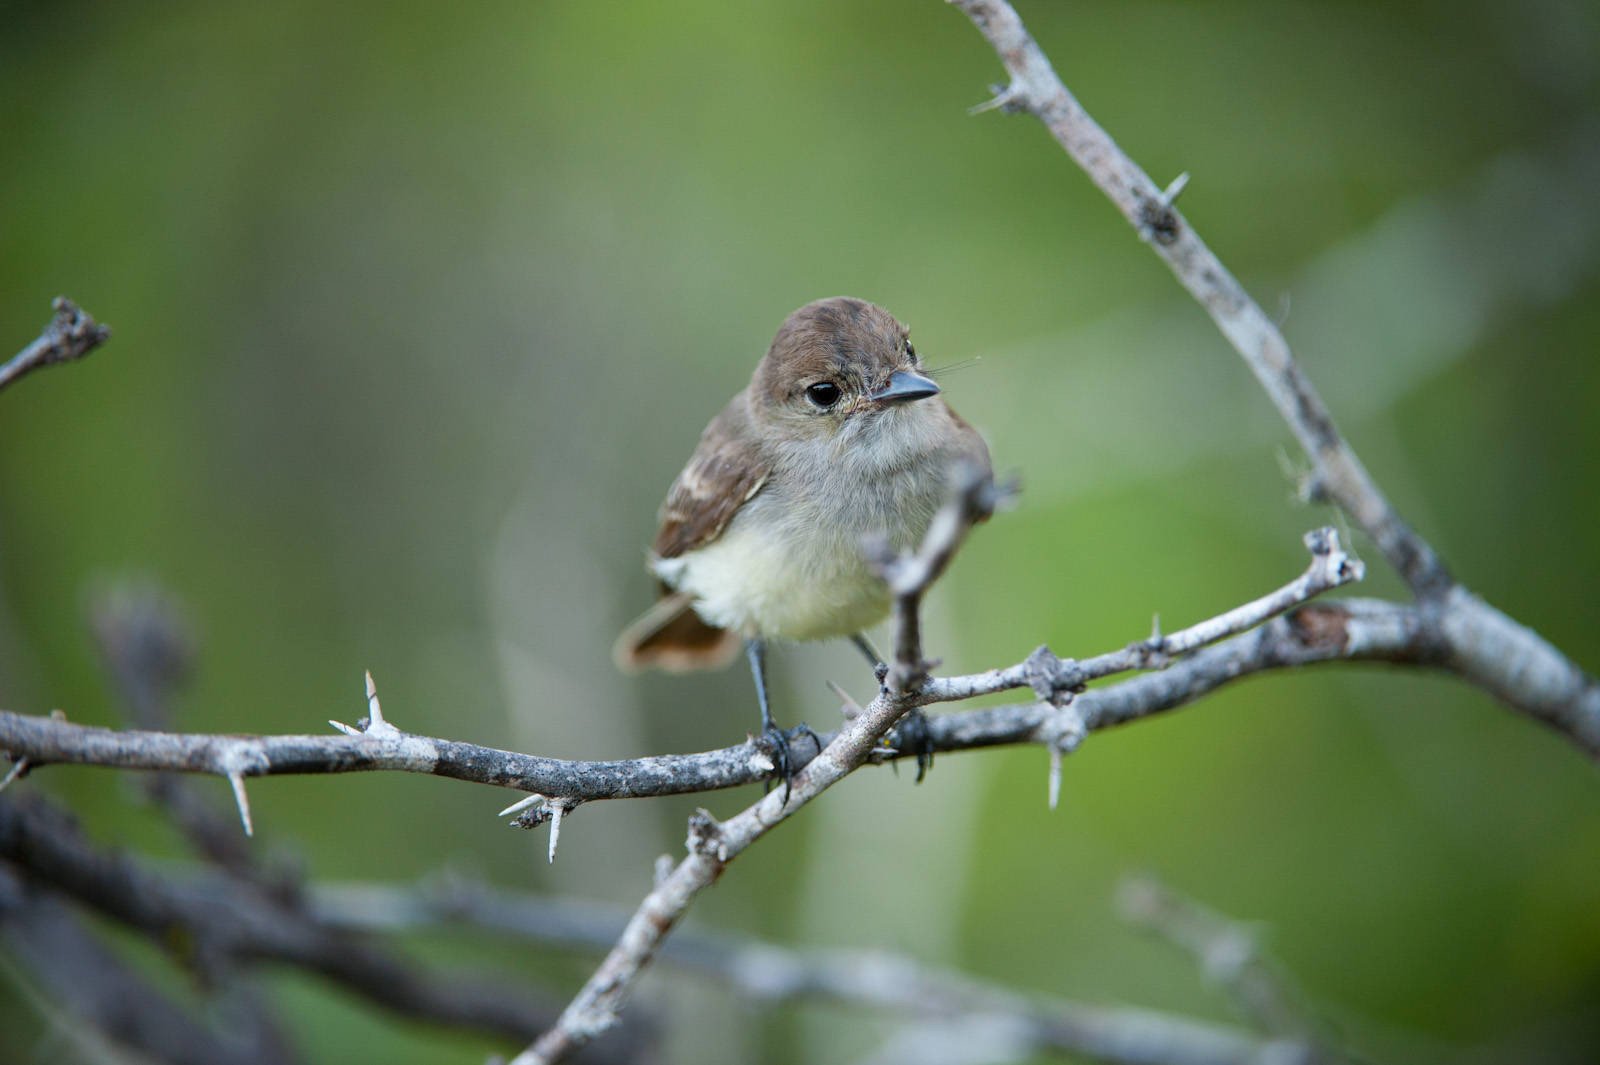 Photo: A Galapagos flycatcher, also known as the Large-billed flycatcher, (Myiarchus magnirostris) on Floreana Island in Galapagos National Park.